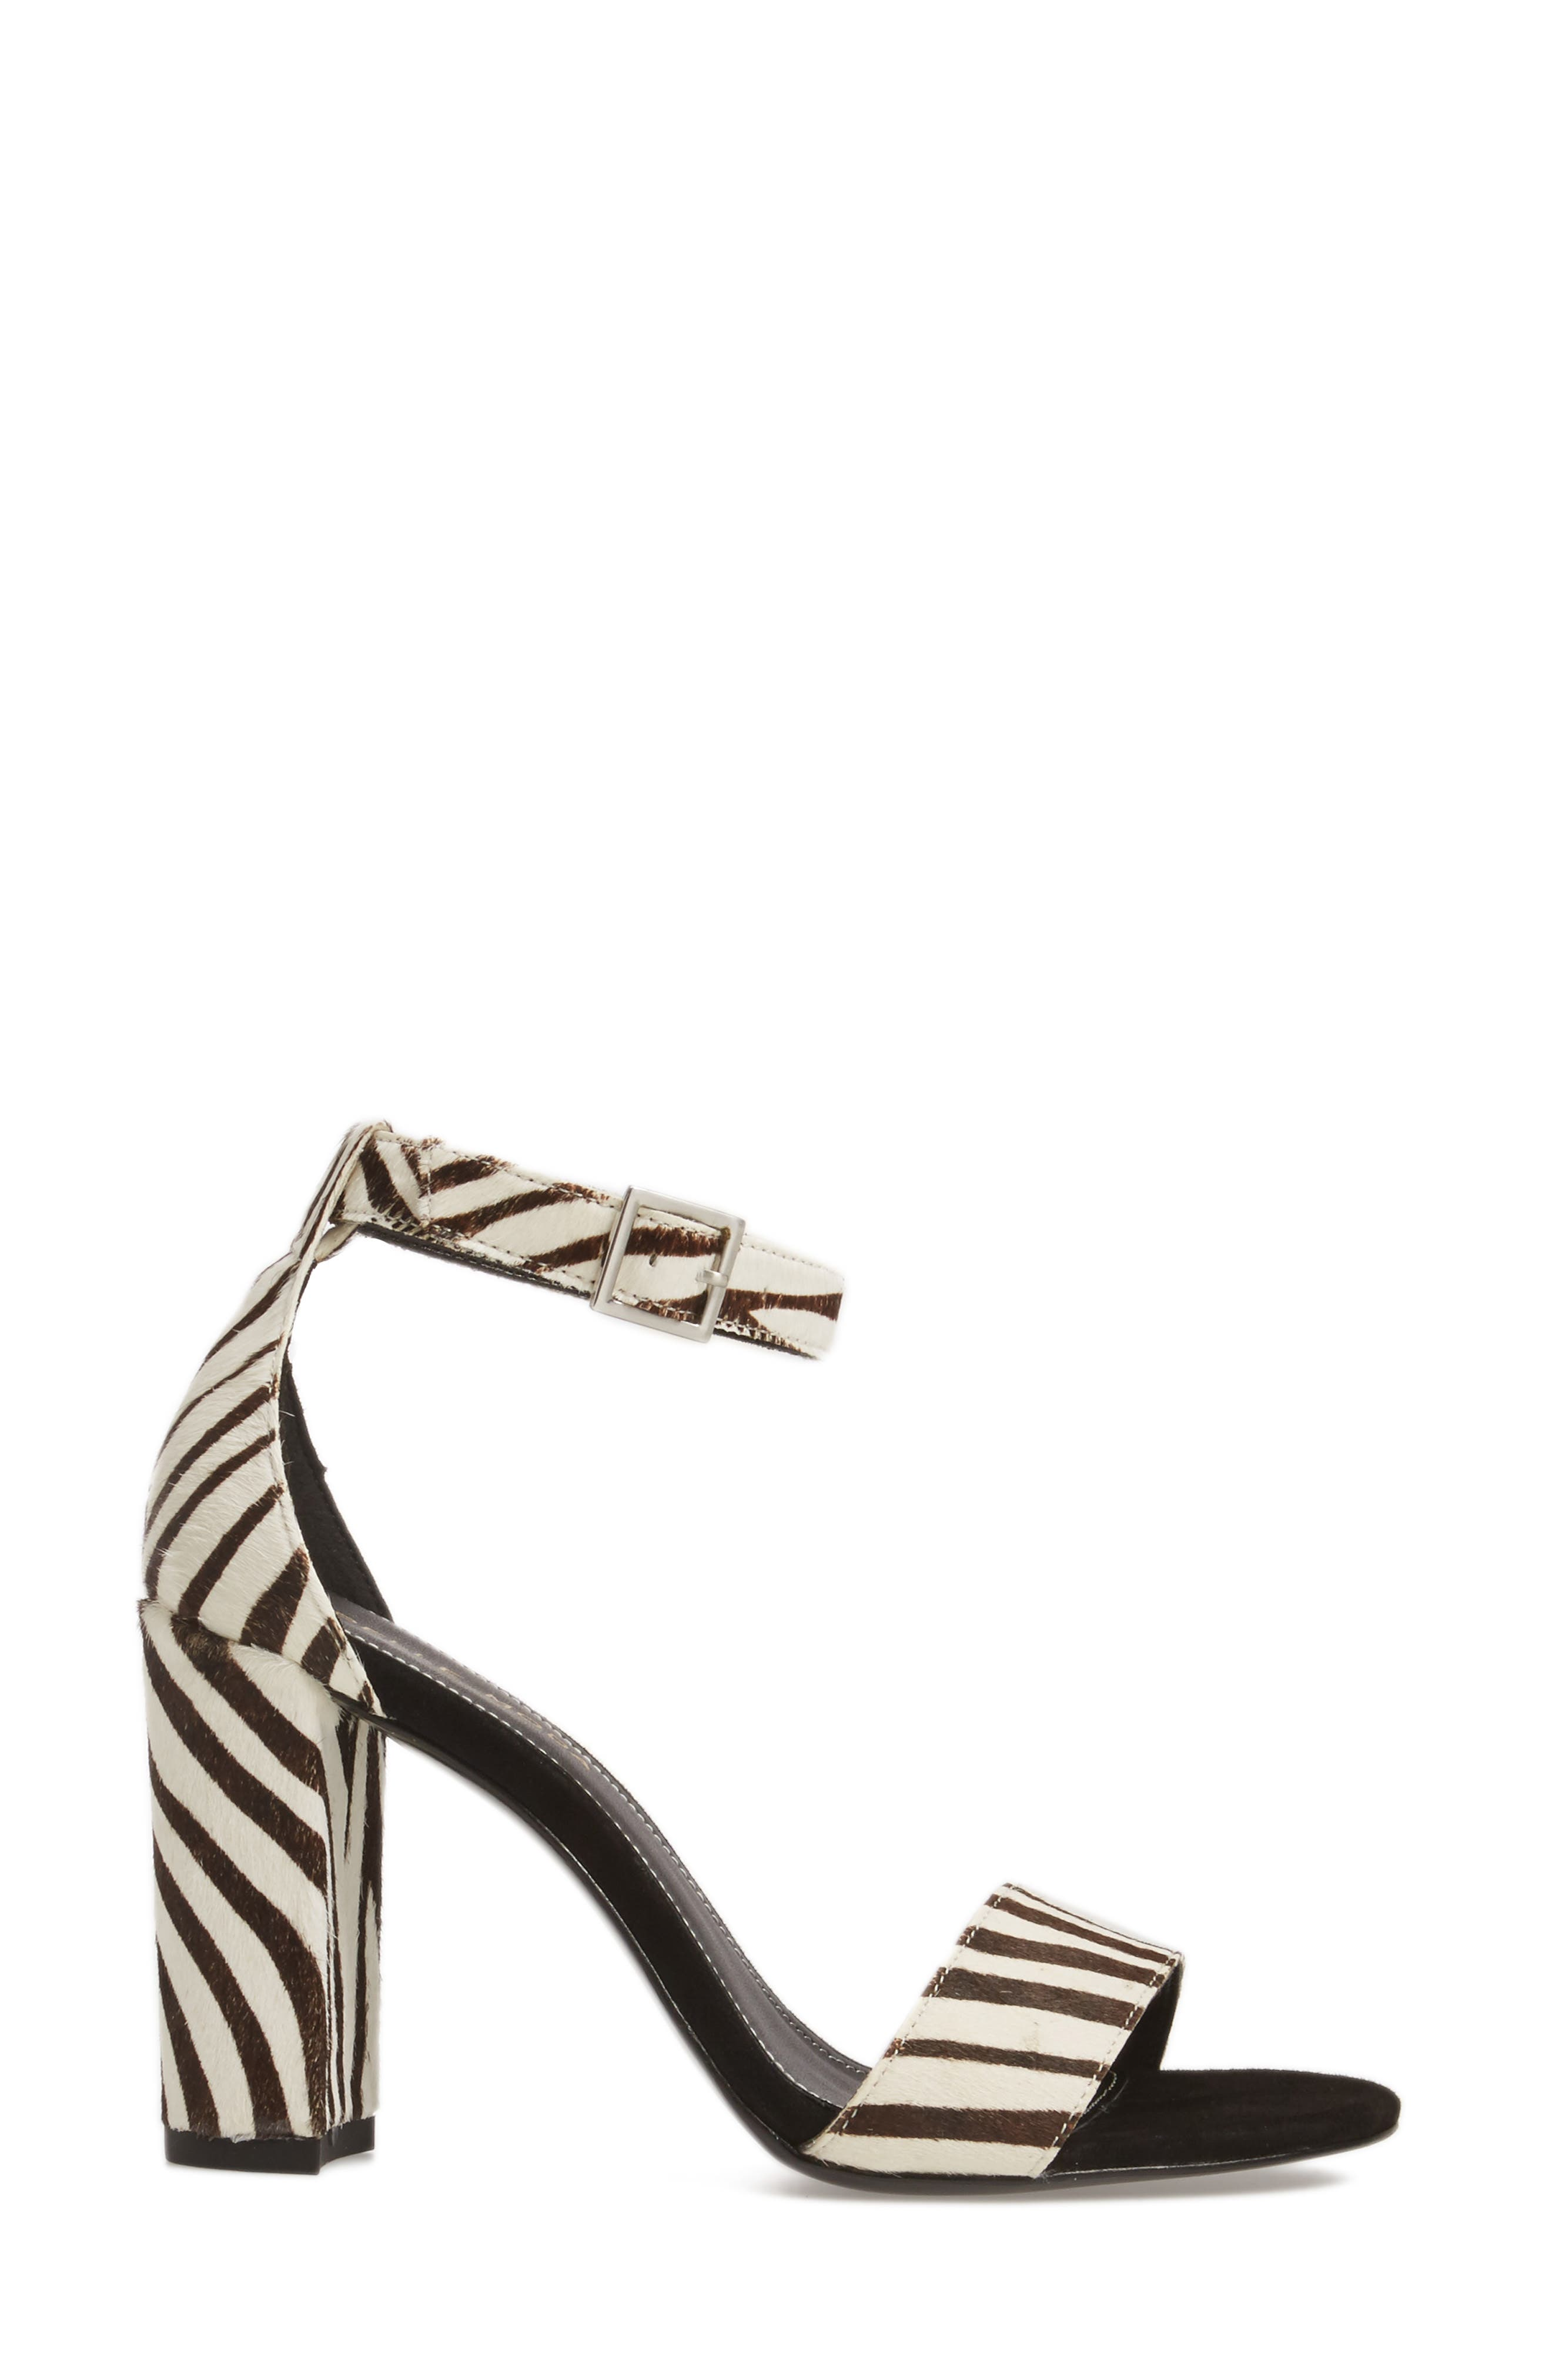 'Bonnie' Ankle Strap Sandal,                             Alternate thumbnail 3, color,                             Zebra Print Calf Hair